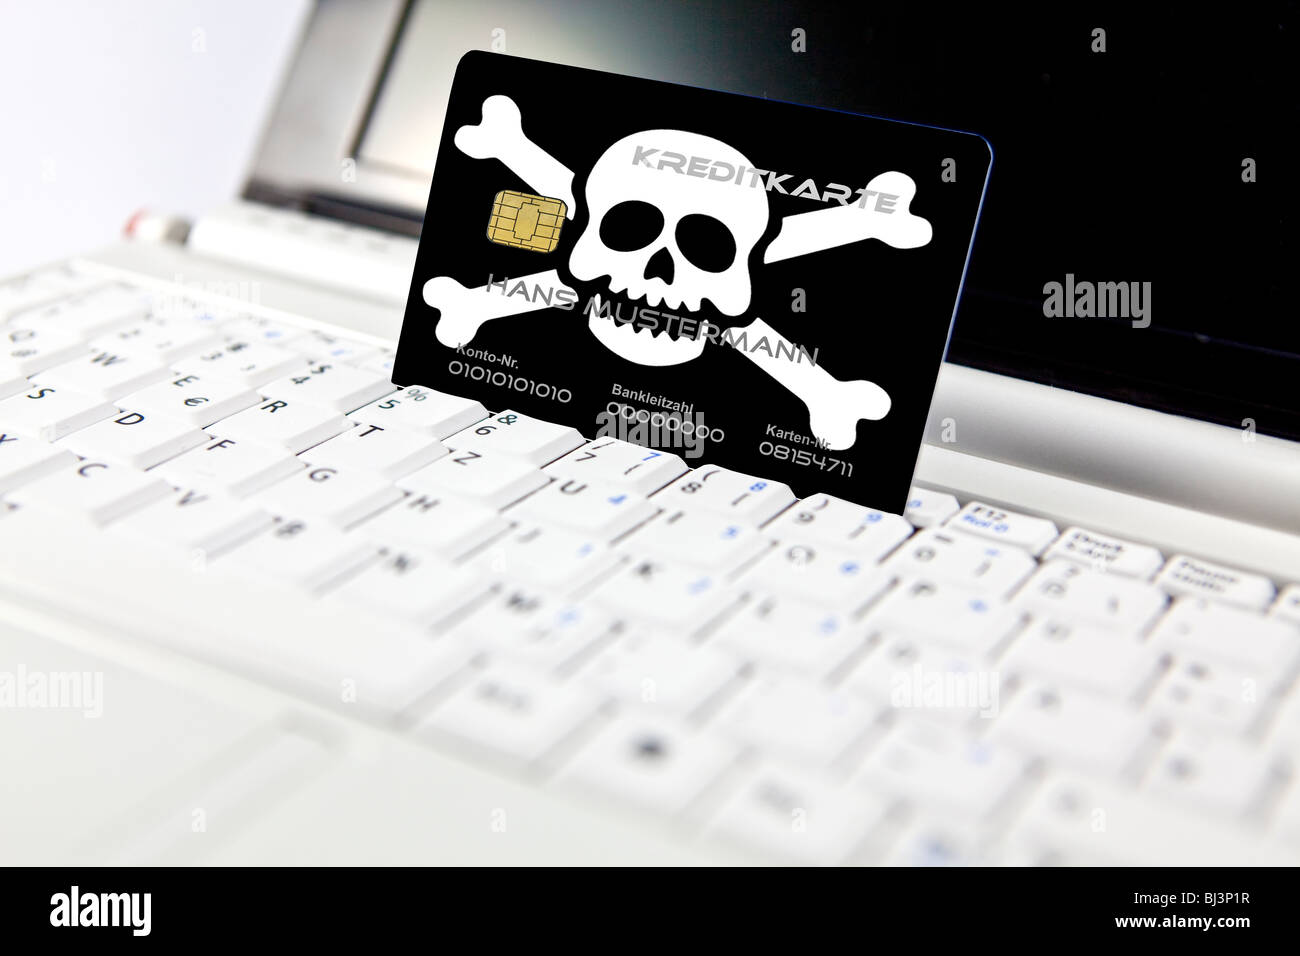 Credit card with a skull at a PC, notebook, symbolic image for the risk of data misuse when online shopping, data Stock Photo